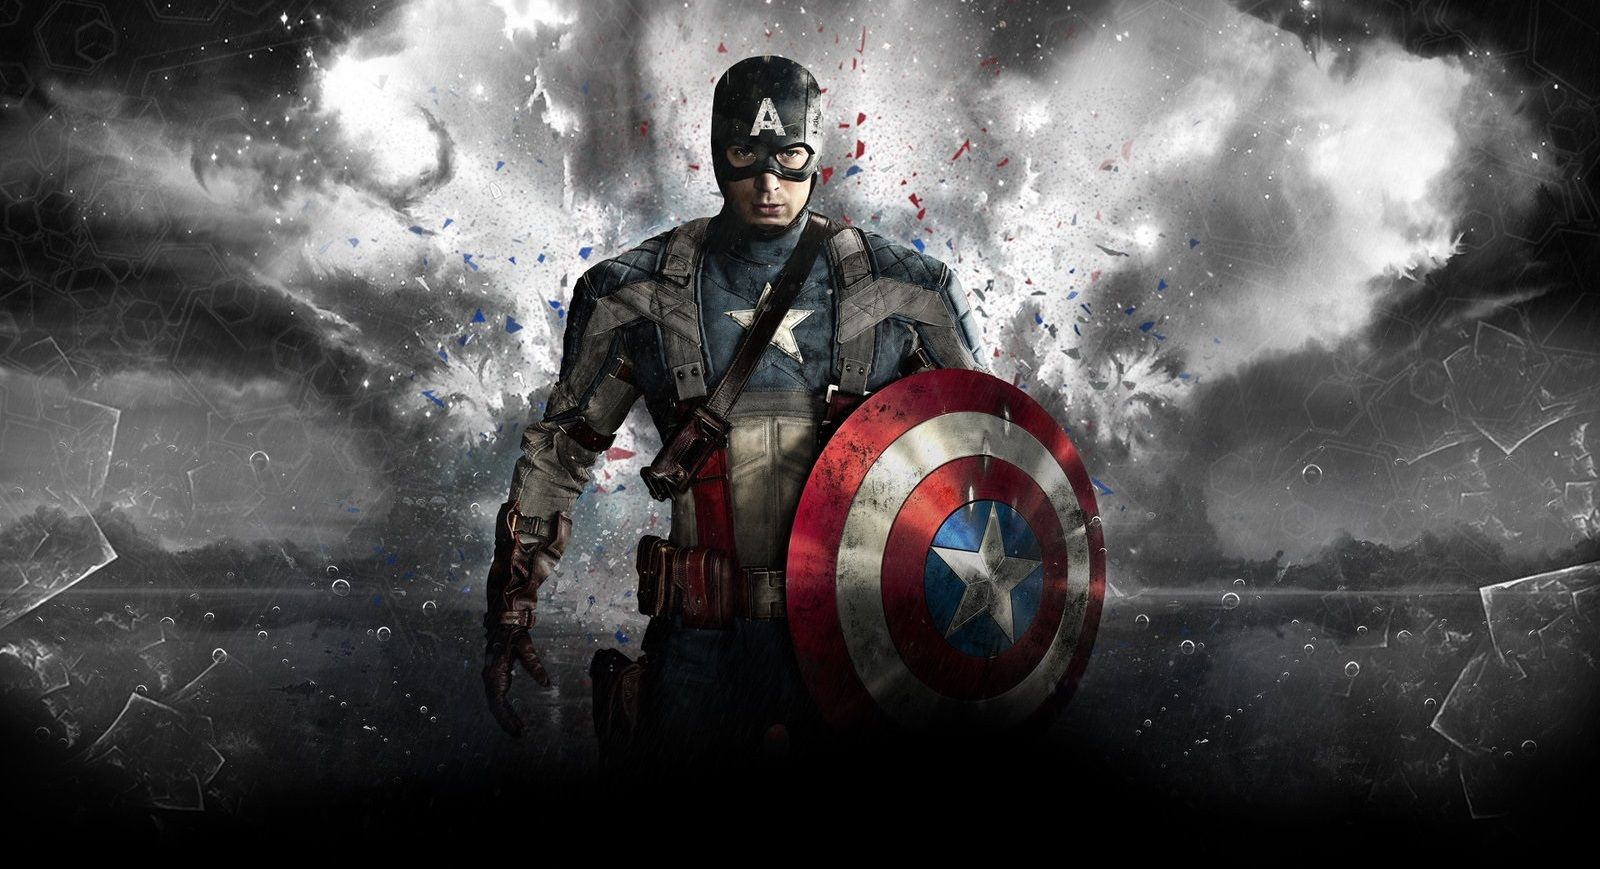 Marvel Super Hero Captain America First Avenger Background Hd